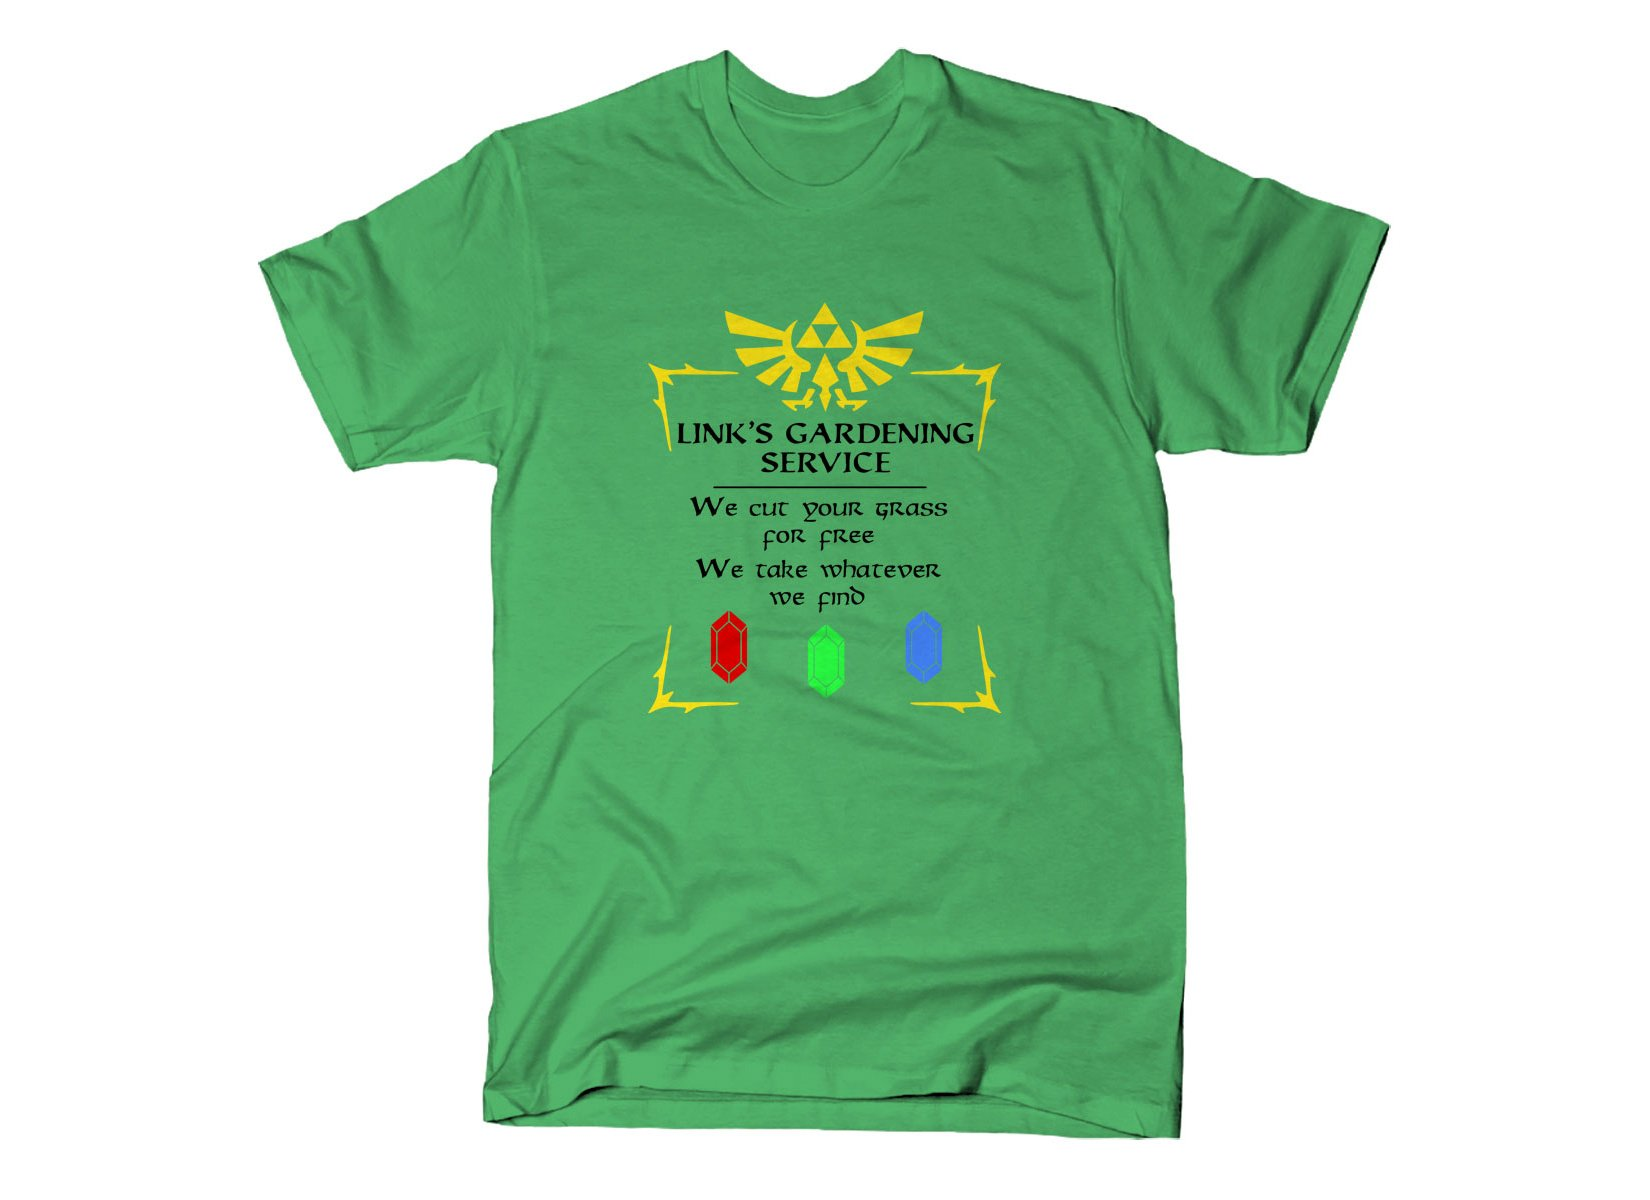 Link's Gardening Service on Mens T-Shirt